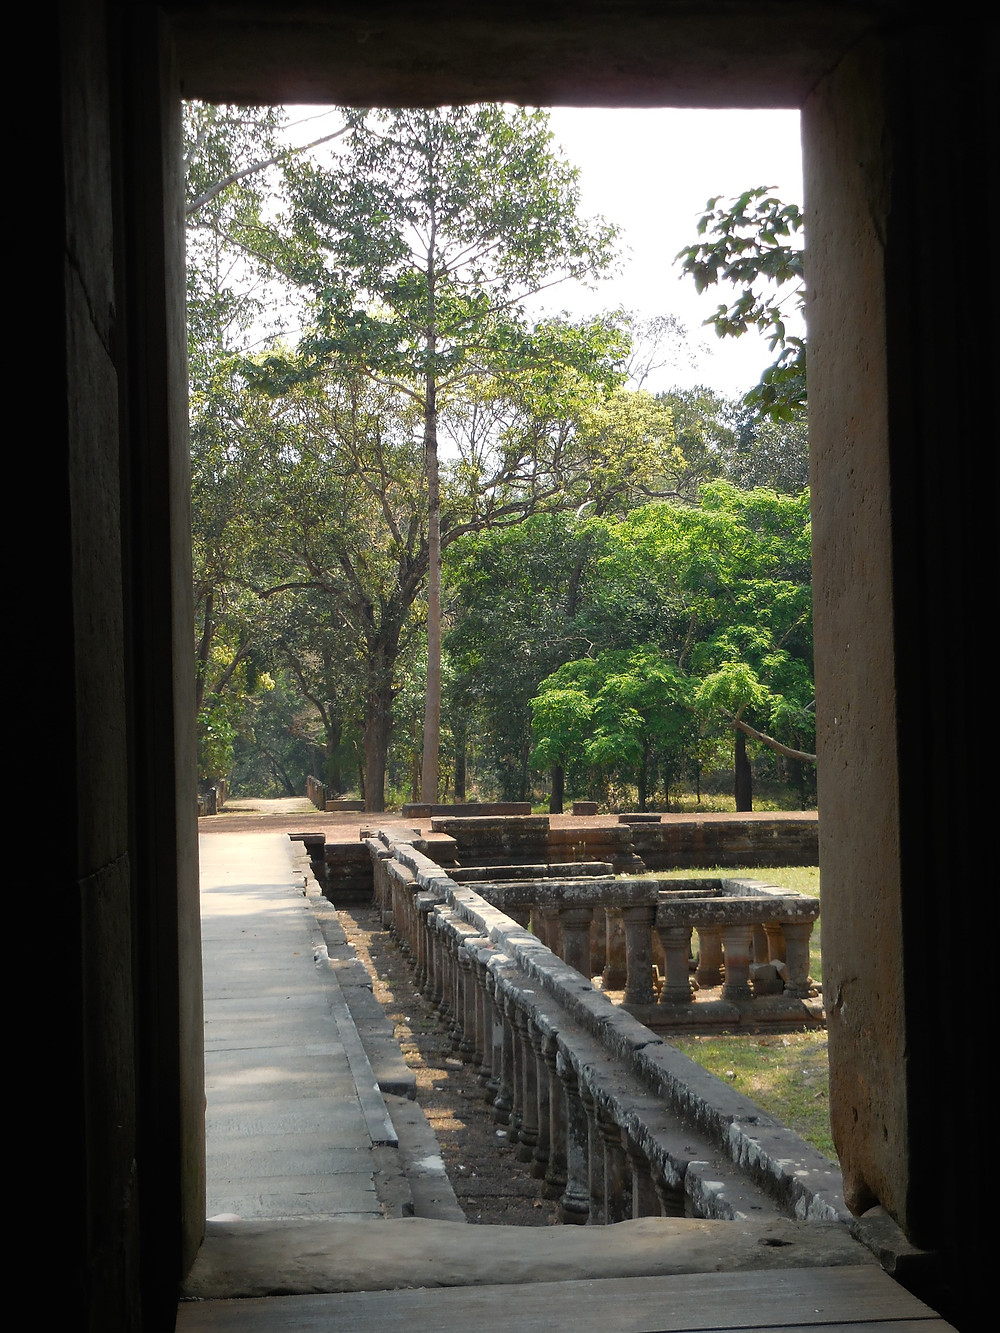 Looking through a doorway to the outdoor walkway at Chau Say Tevoda